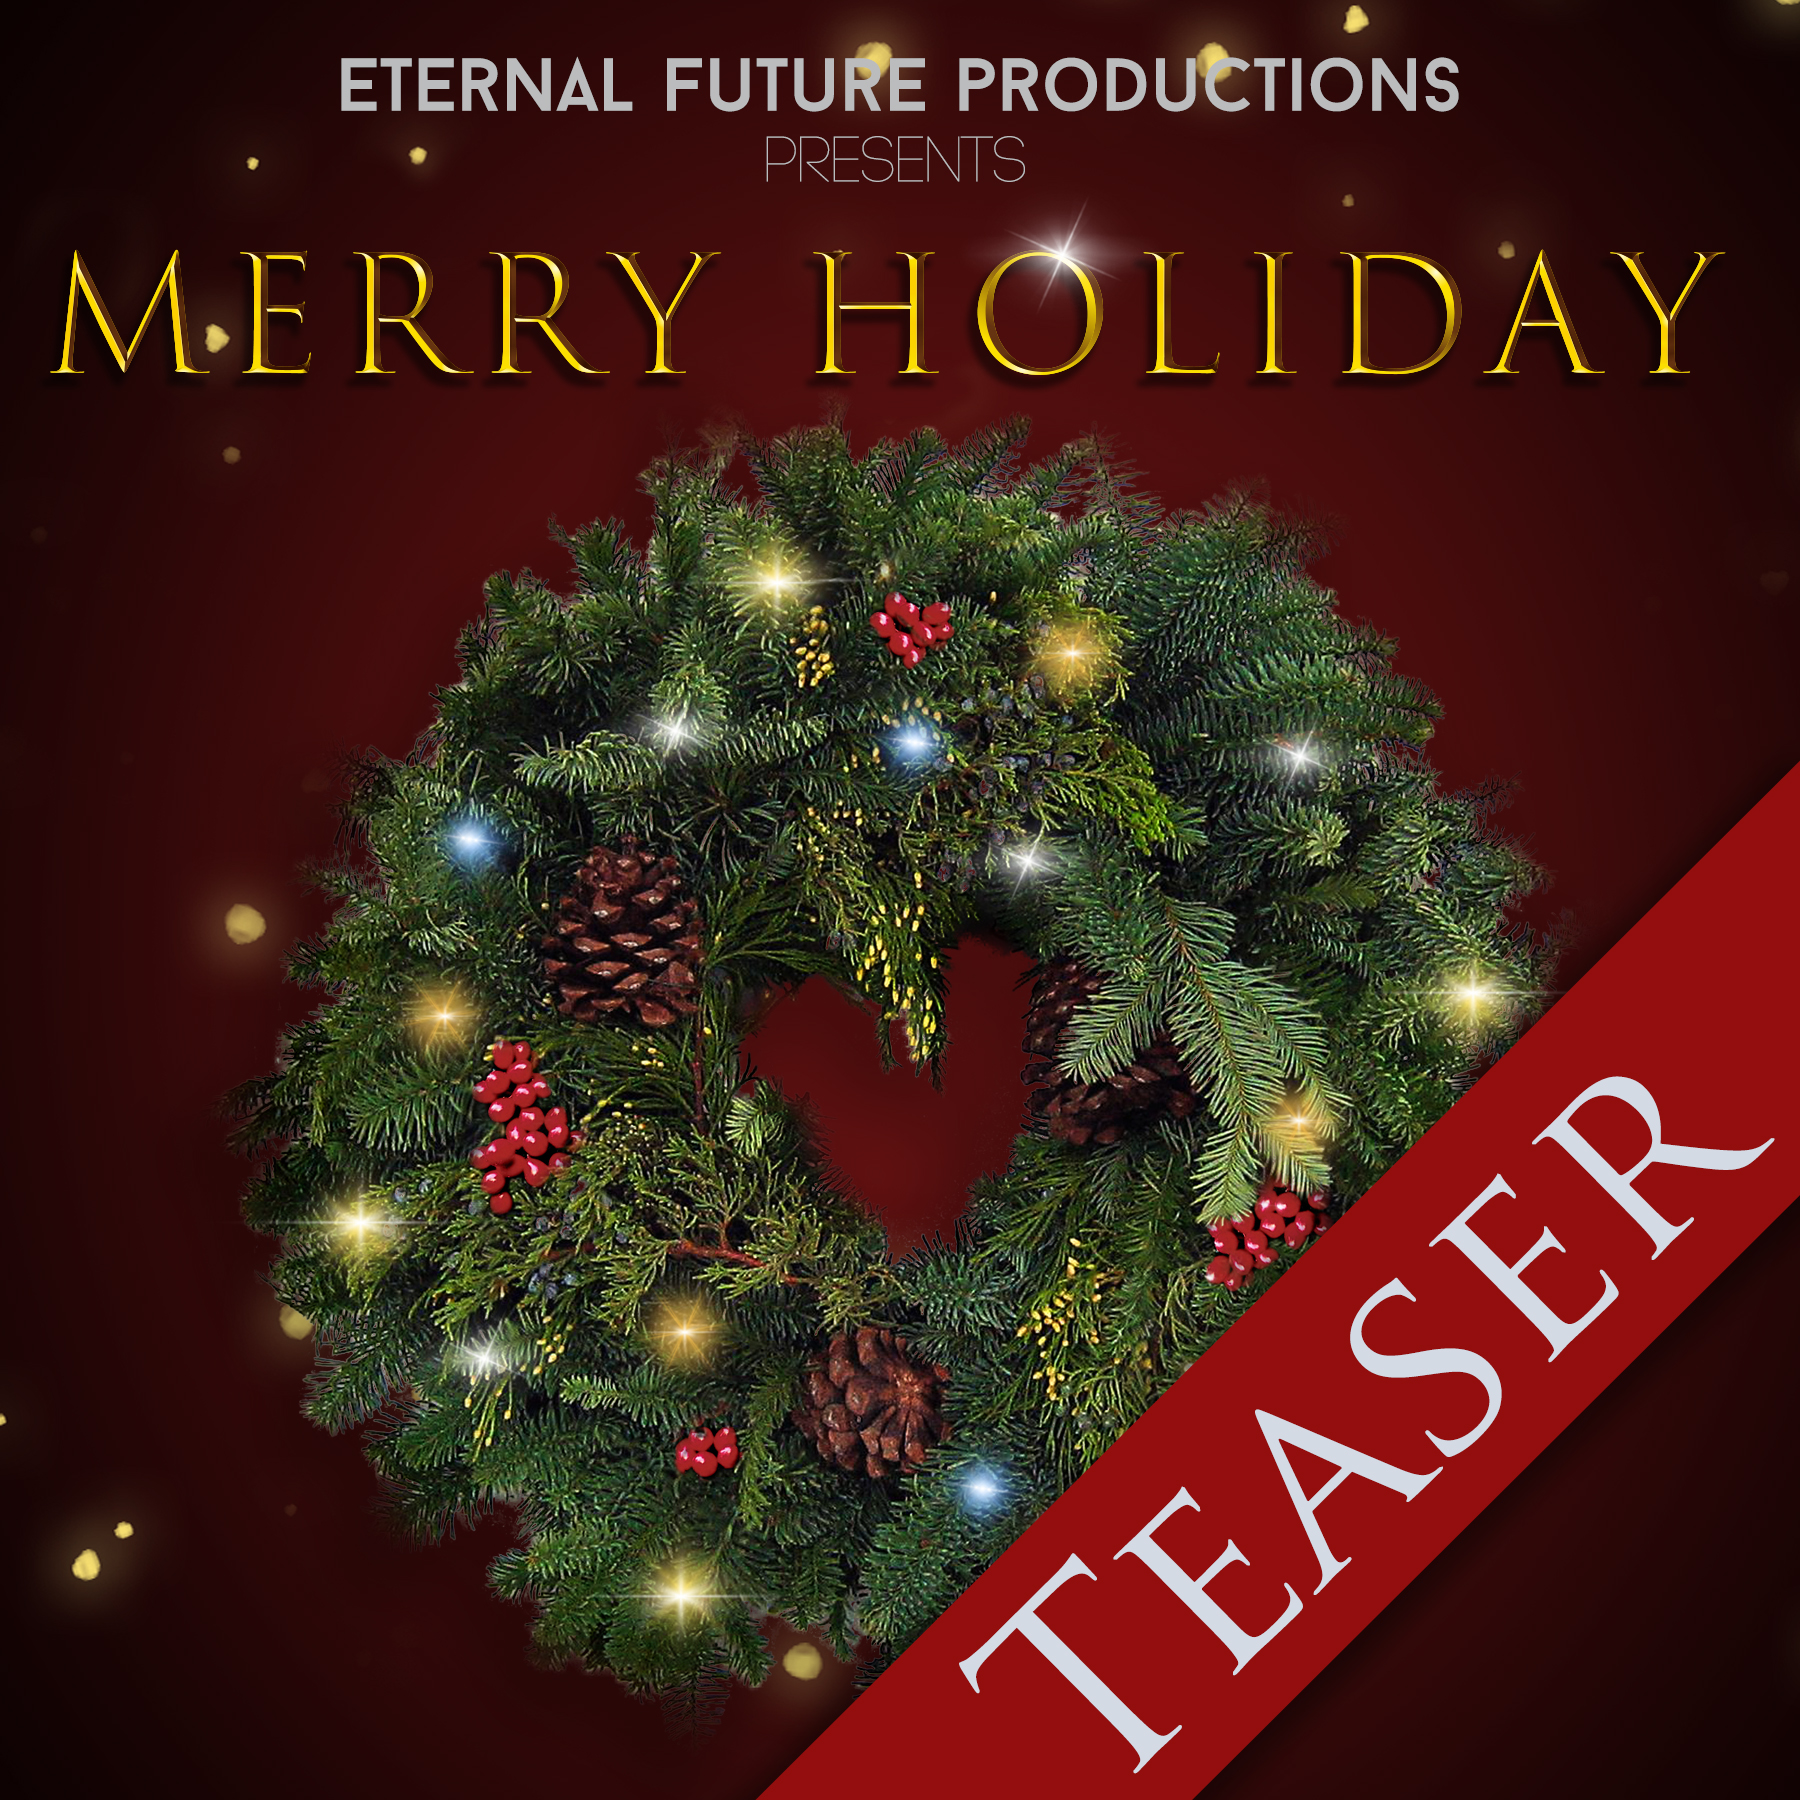 Merry Holiday Teaser